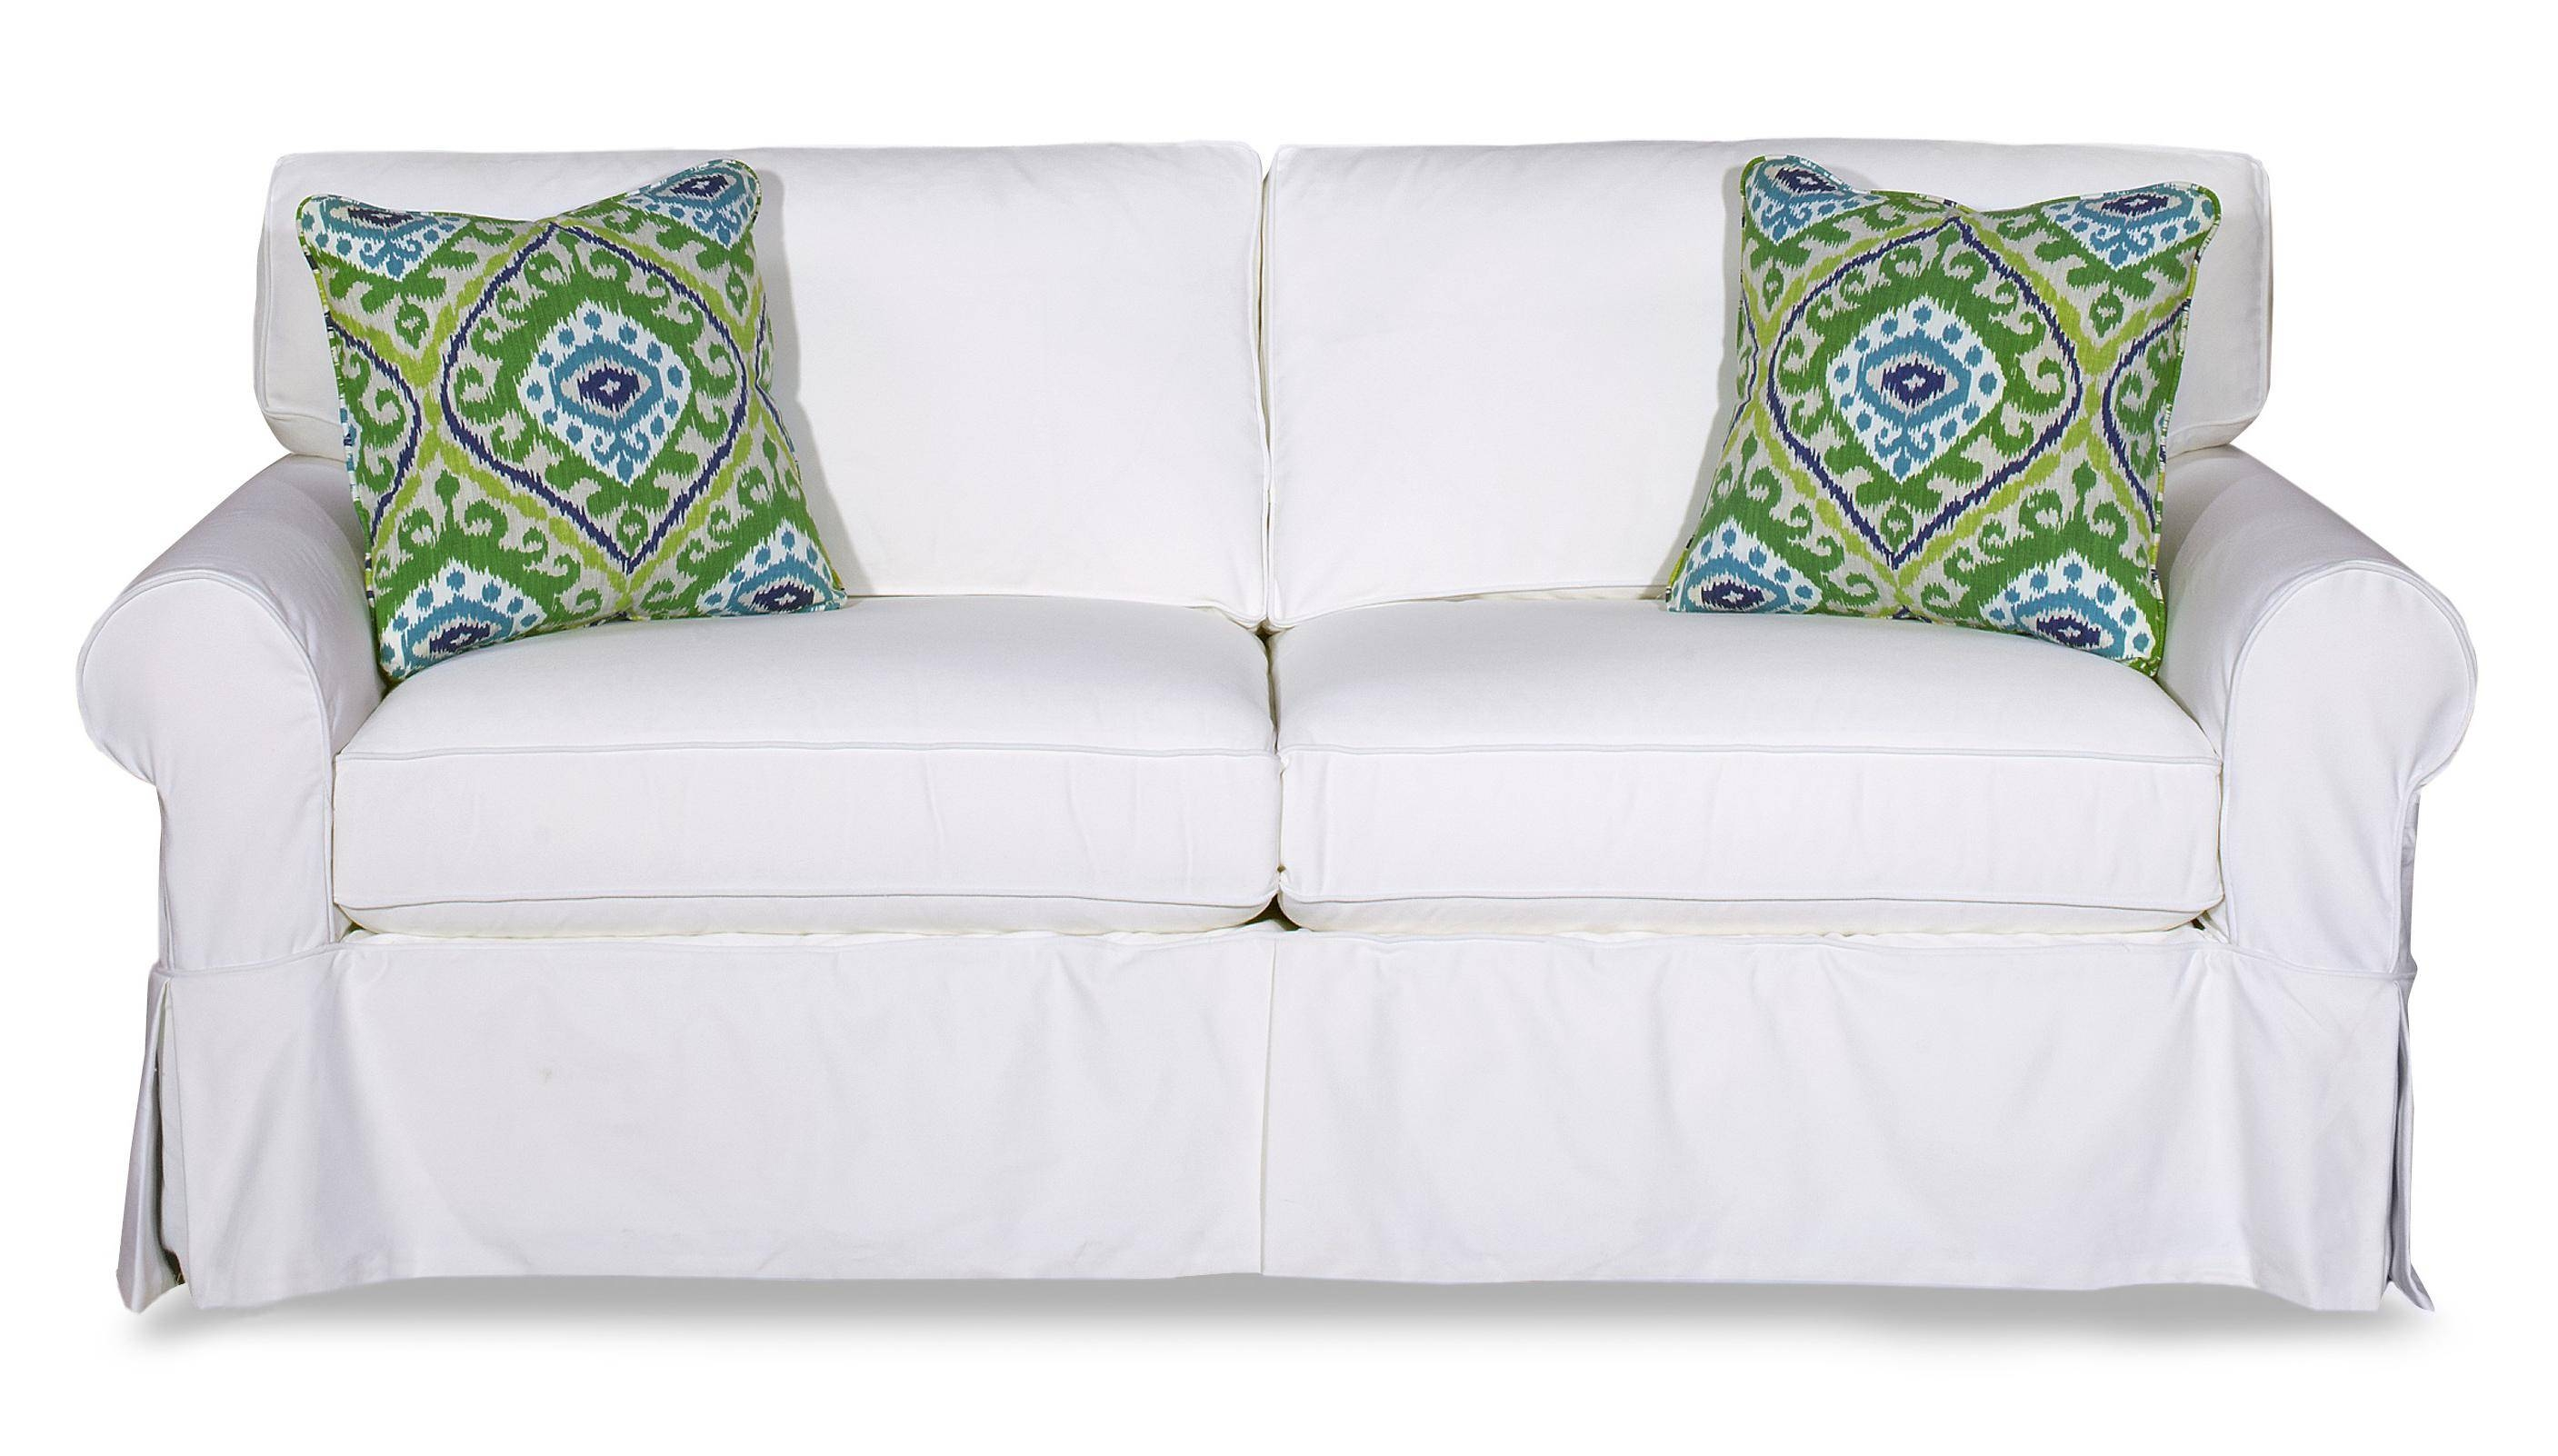 Showing Gallery of Mitchell Gold Sofa Slipcovers View 23 of 26